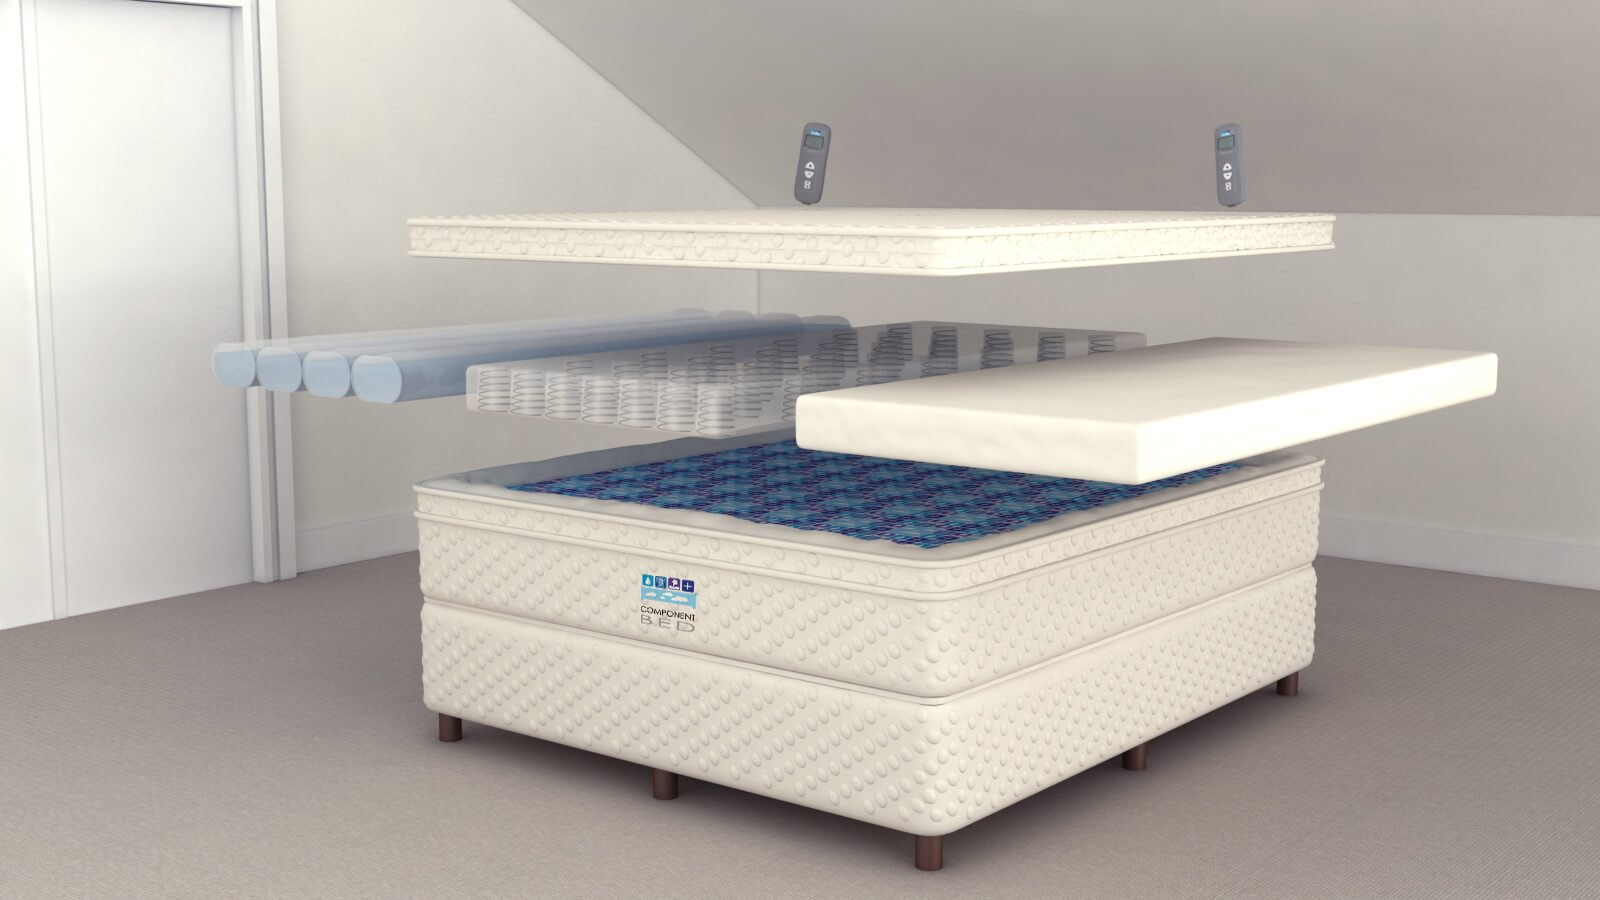 Cheap queen Mattress Under 100 Dollars